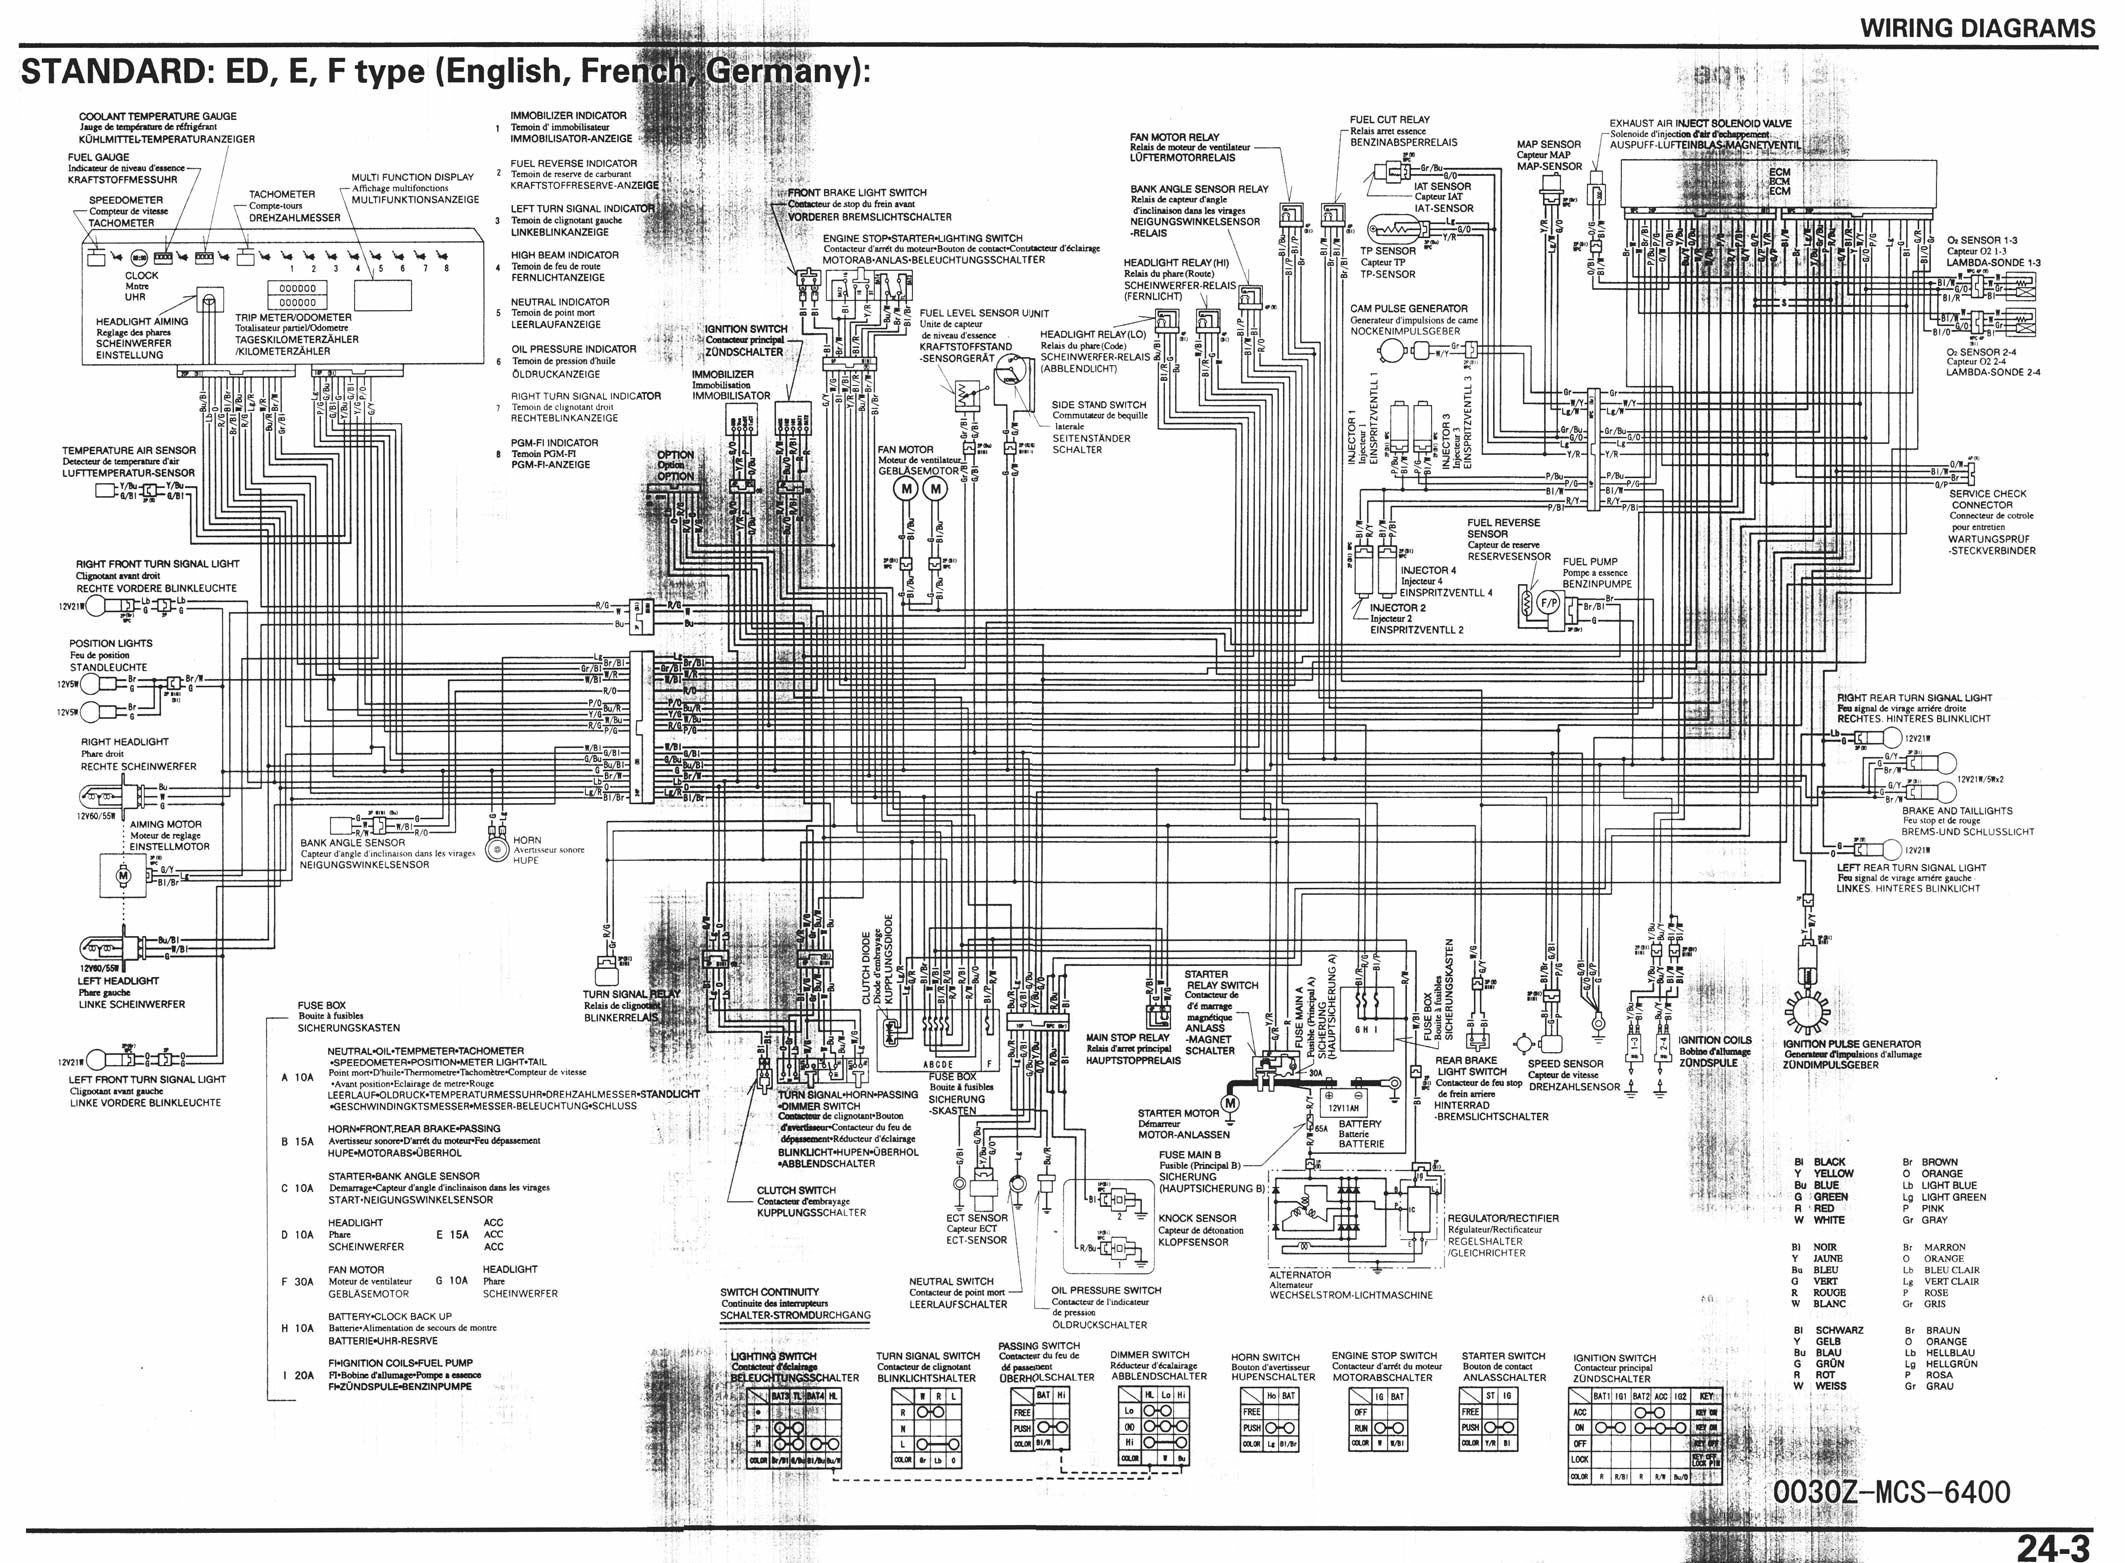 bmw f650 wiring diagram wiring diagram list bmw f650gs electrical wiring diagram bmw f650 wiring diagram [ 2125 x 1563 Pixel ]